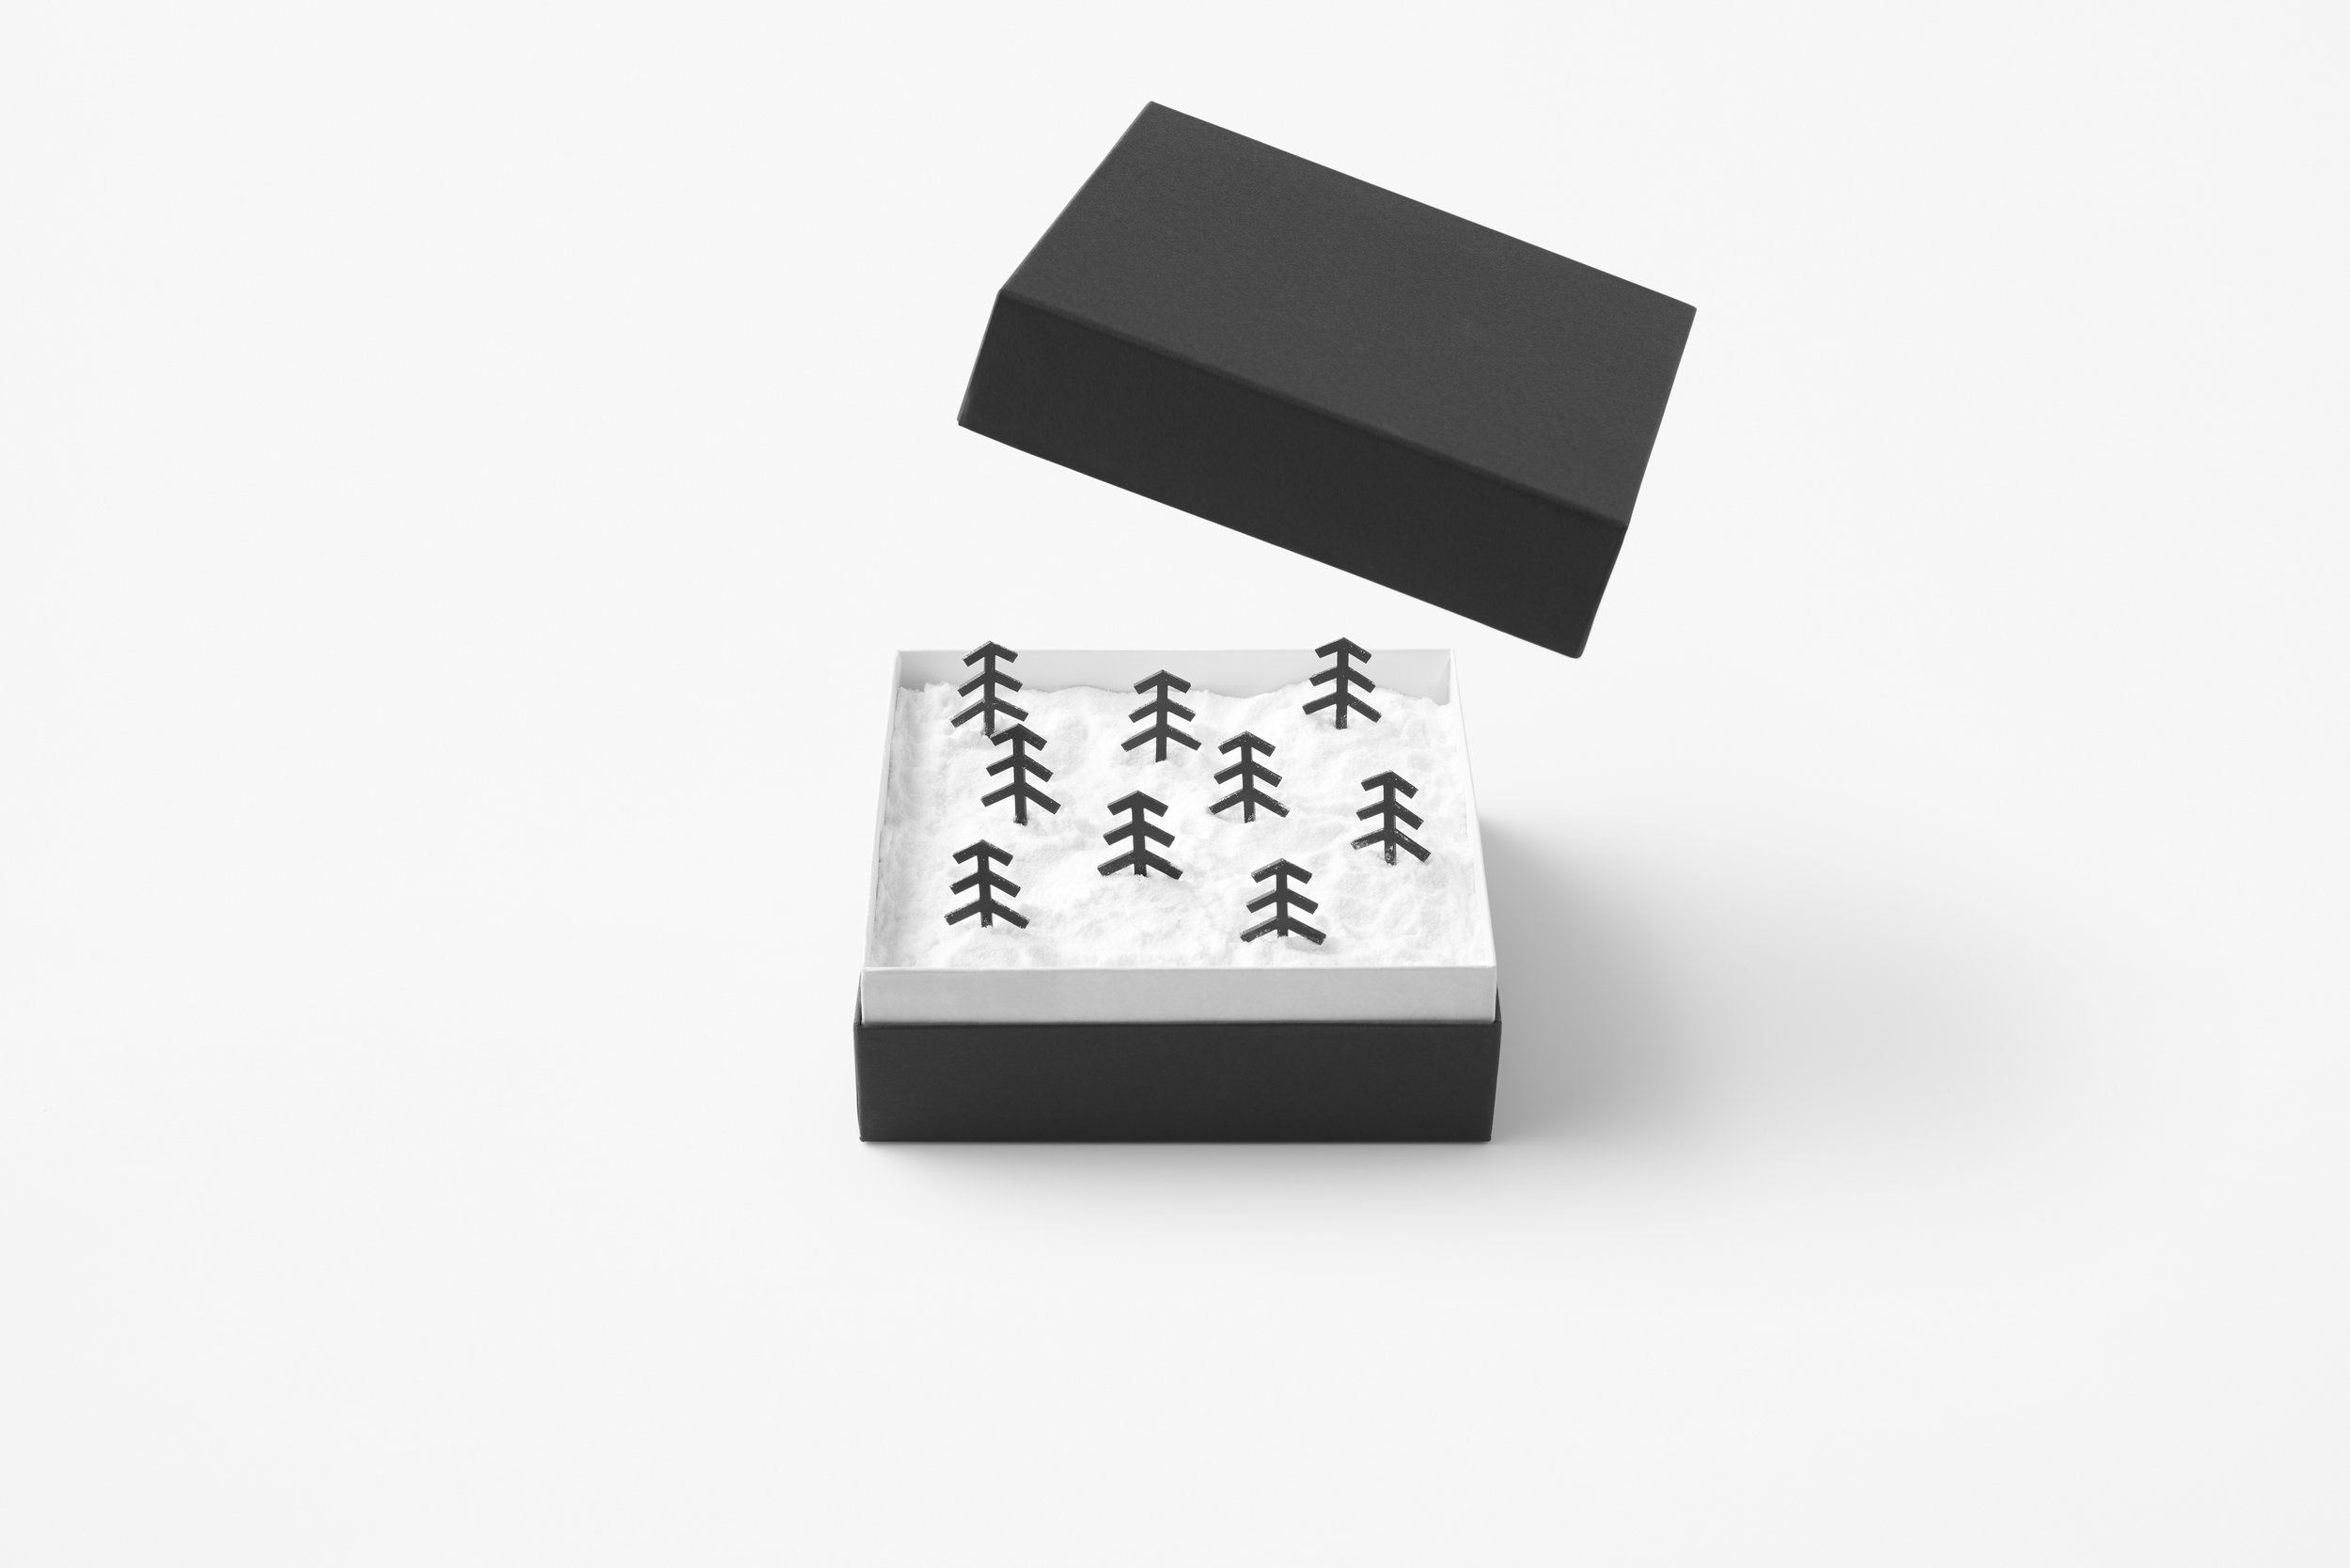 neyuki Client: Flanders Design Company: nendo  Creative Direction, Art Direction & Design: nendo